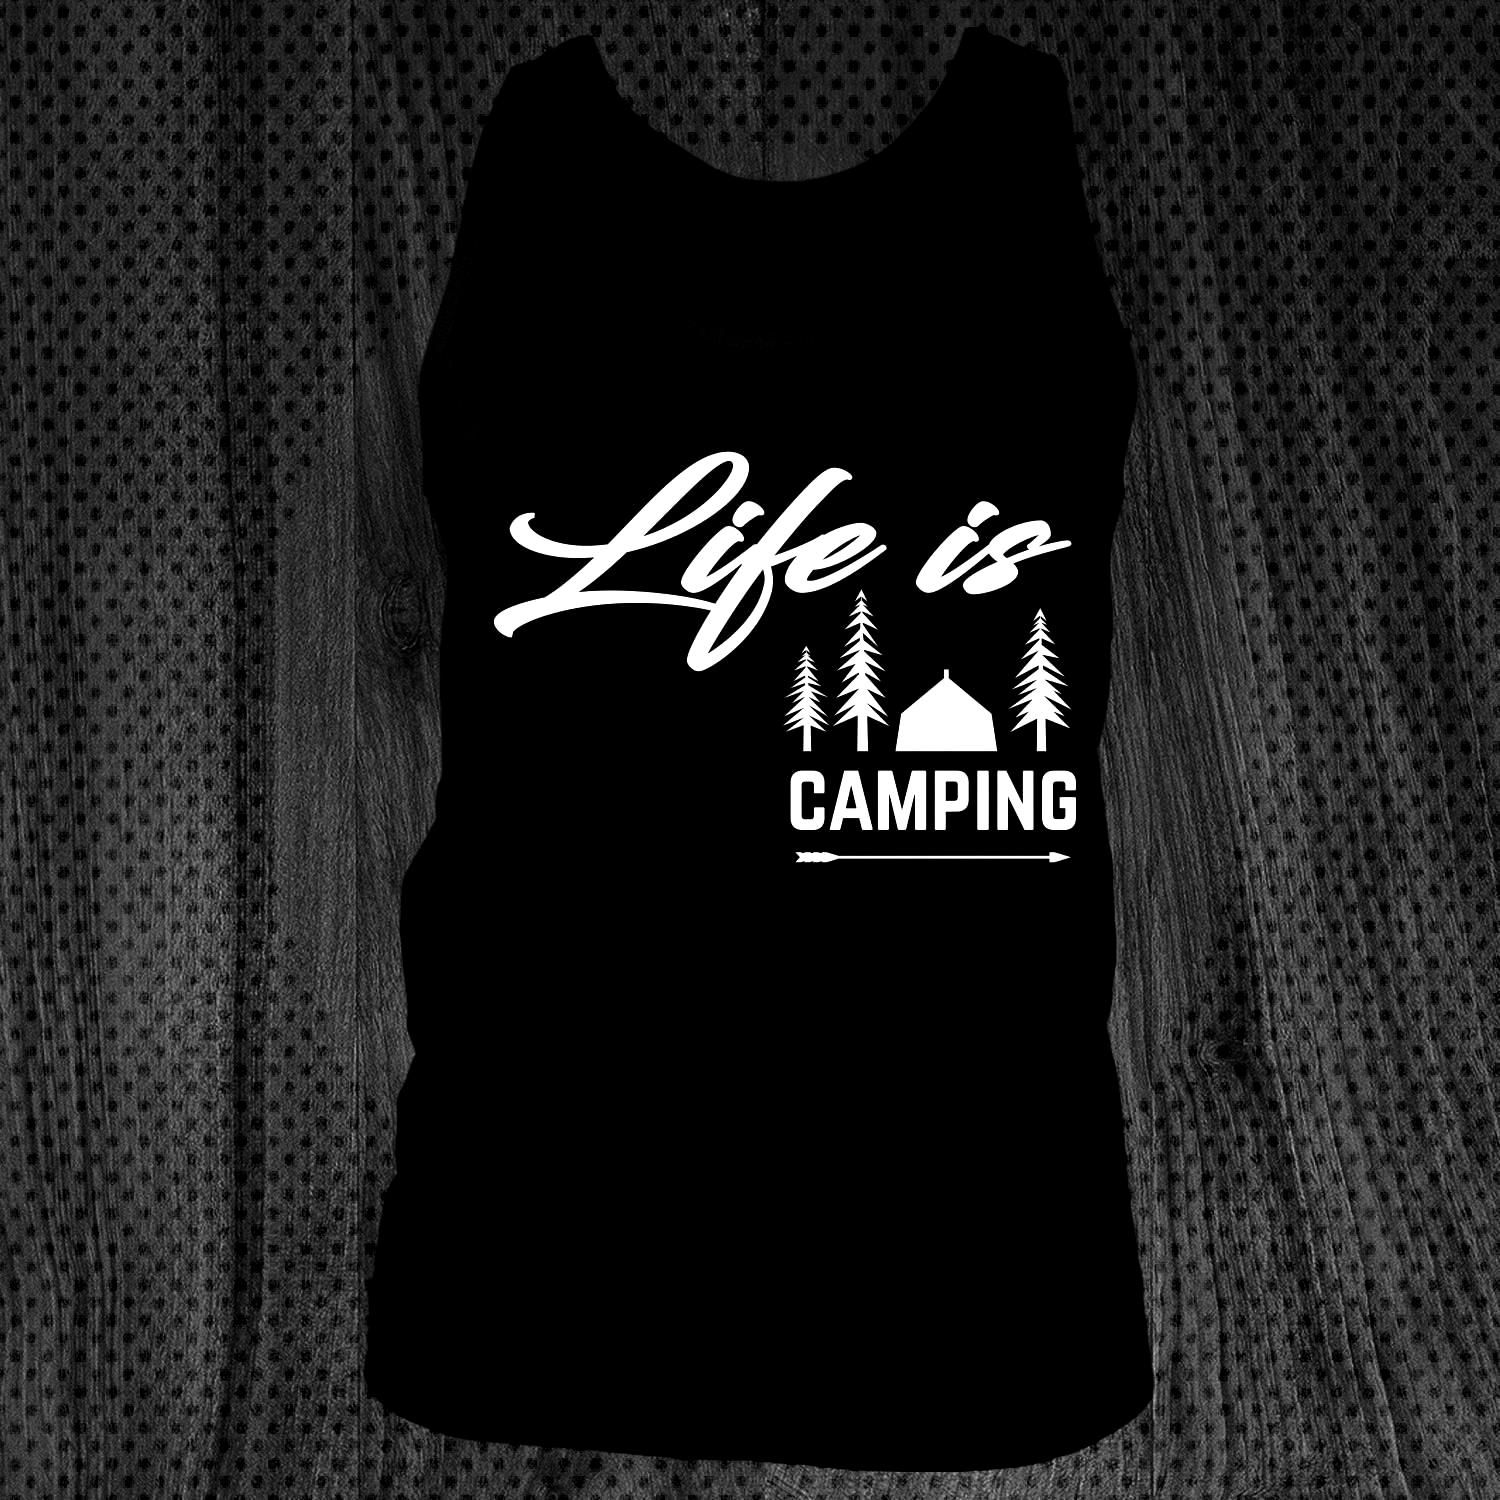 Life Is Camping Gift Campers Great camping t shirt/mug/bag gift for family, frie...  Life Is Campin